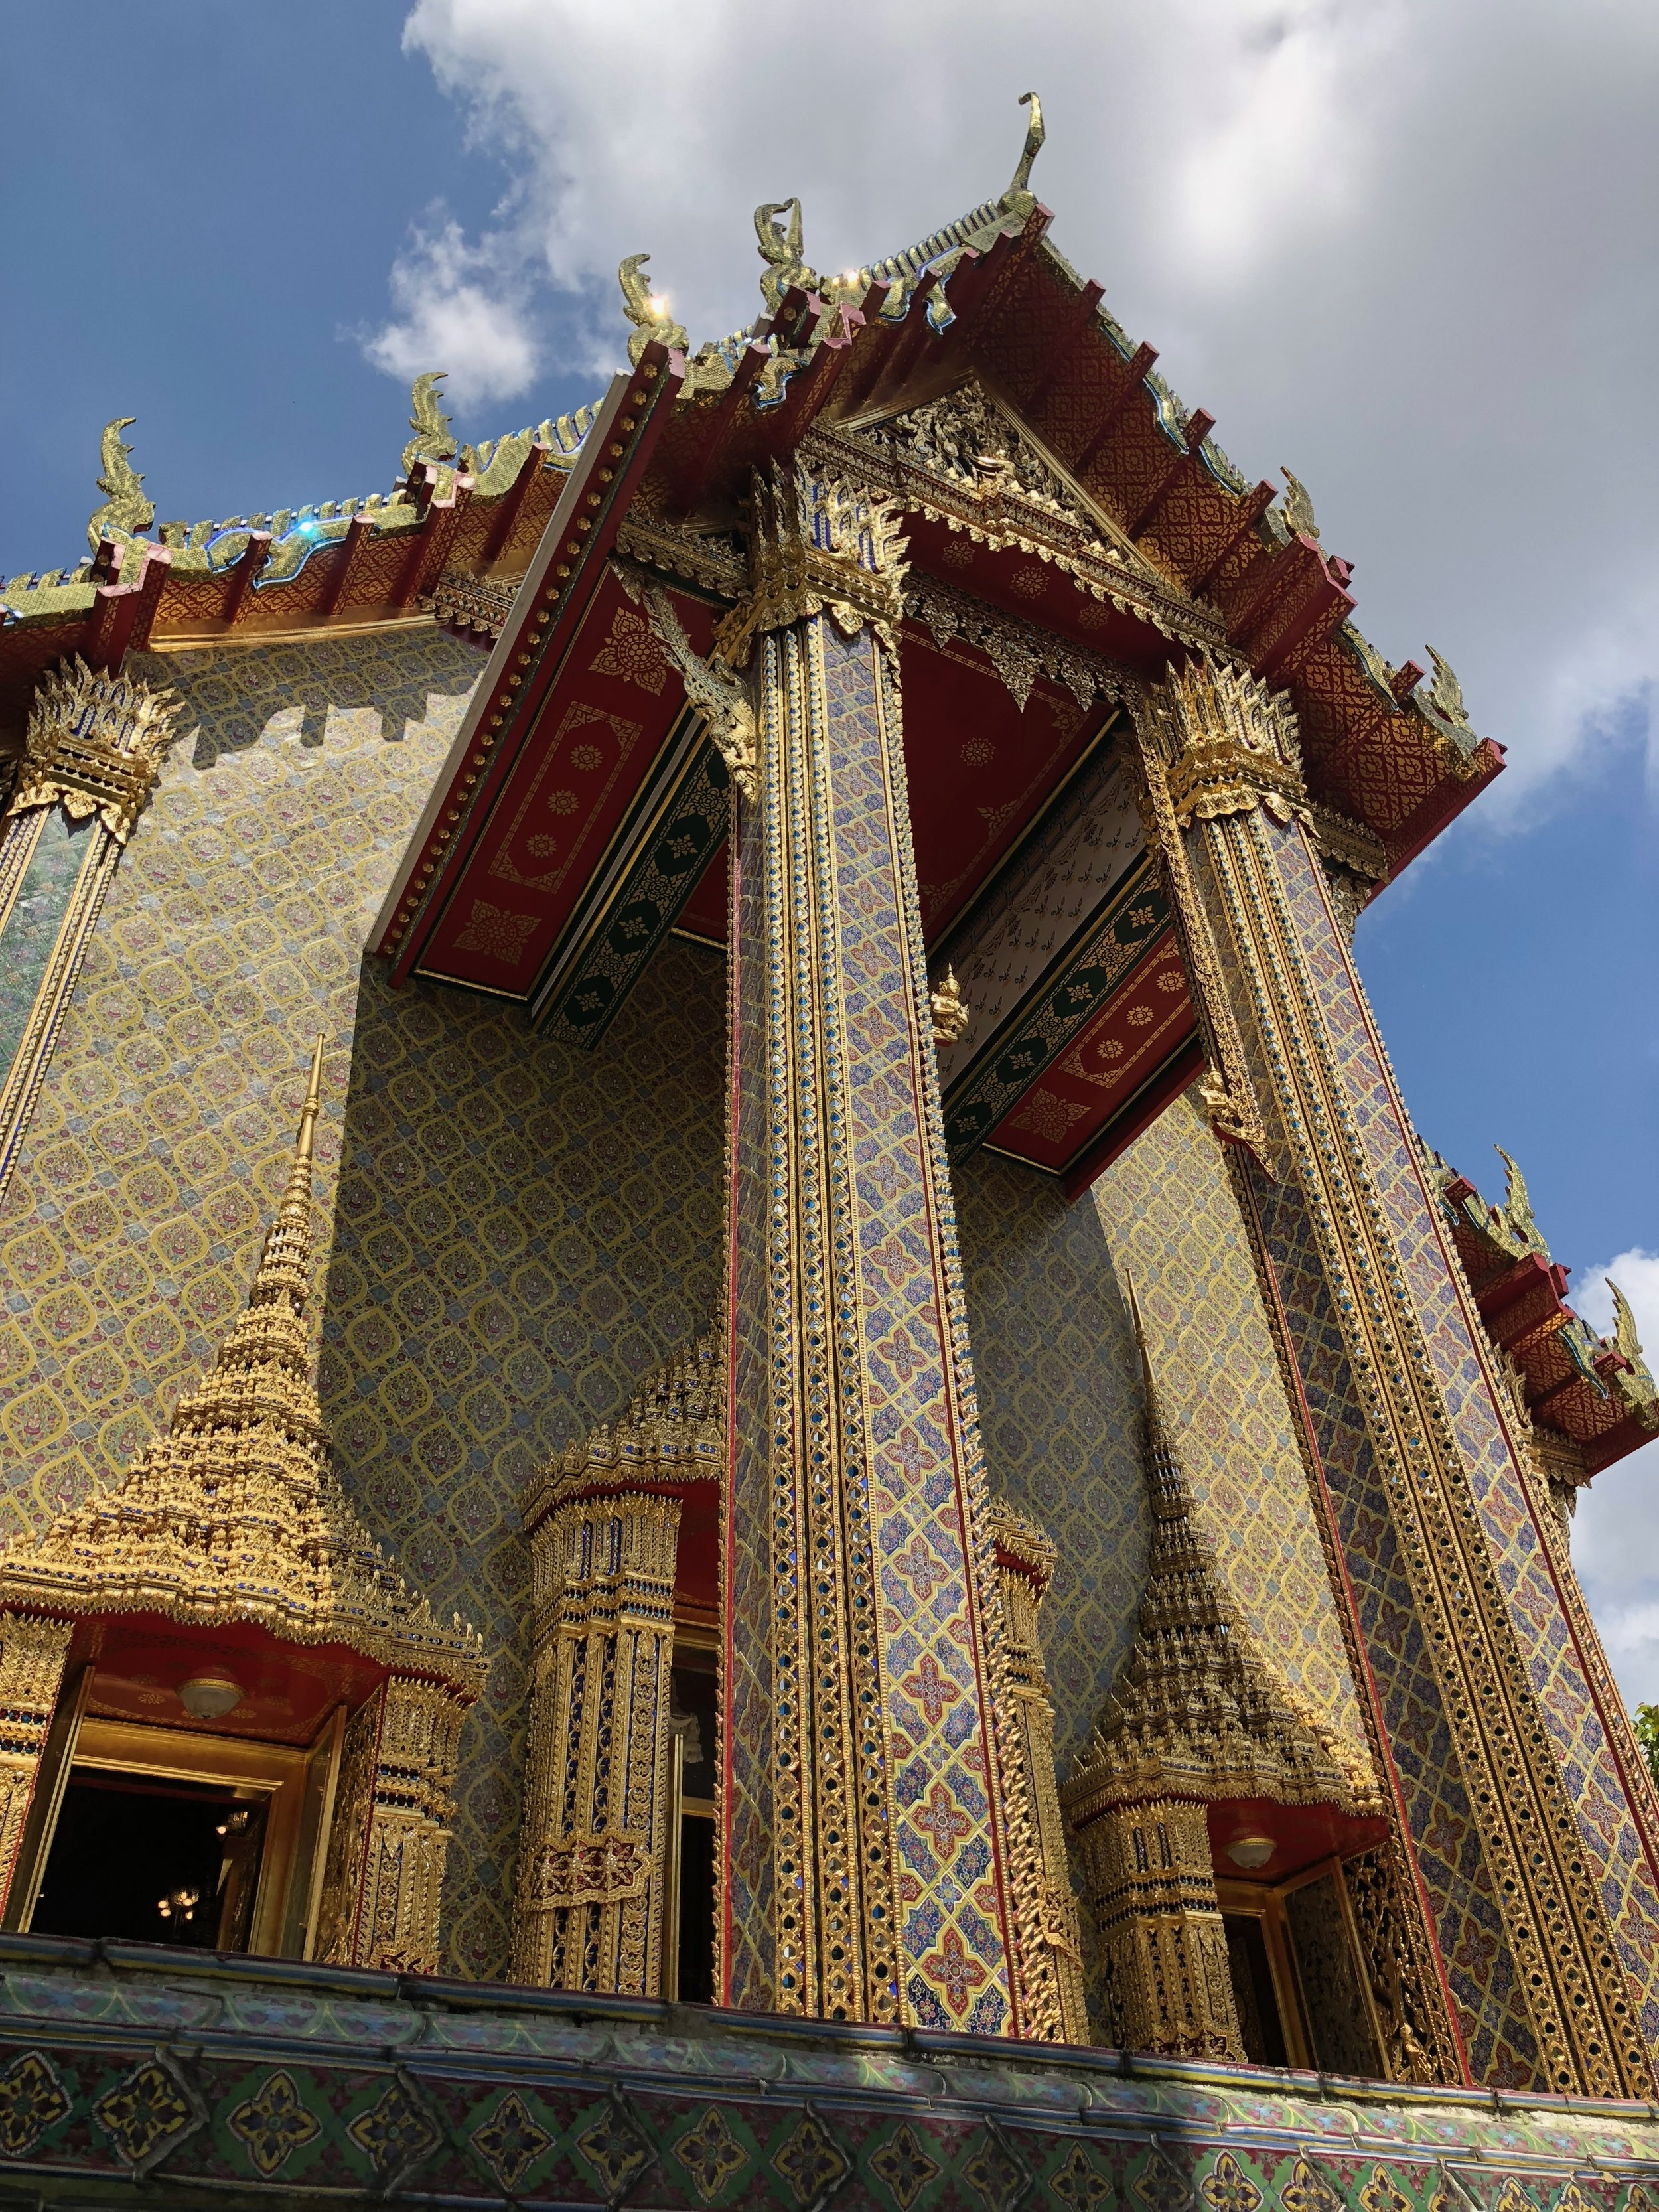 I am so fortunate to see how stunningly decorated these temple complexes are, and the one in Wat Ratchabophit Sathitmahasimaram takes the cake.